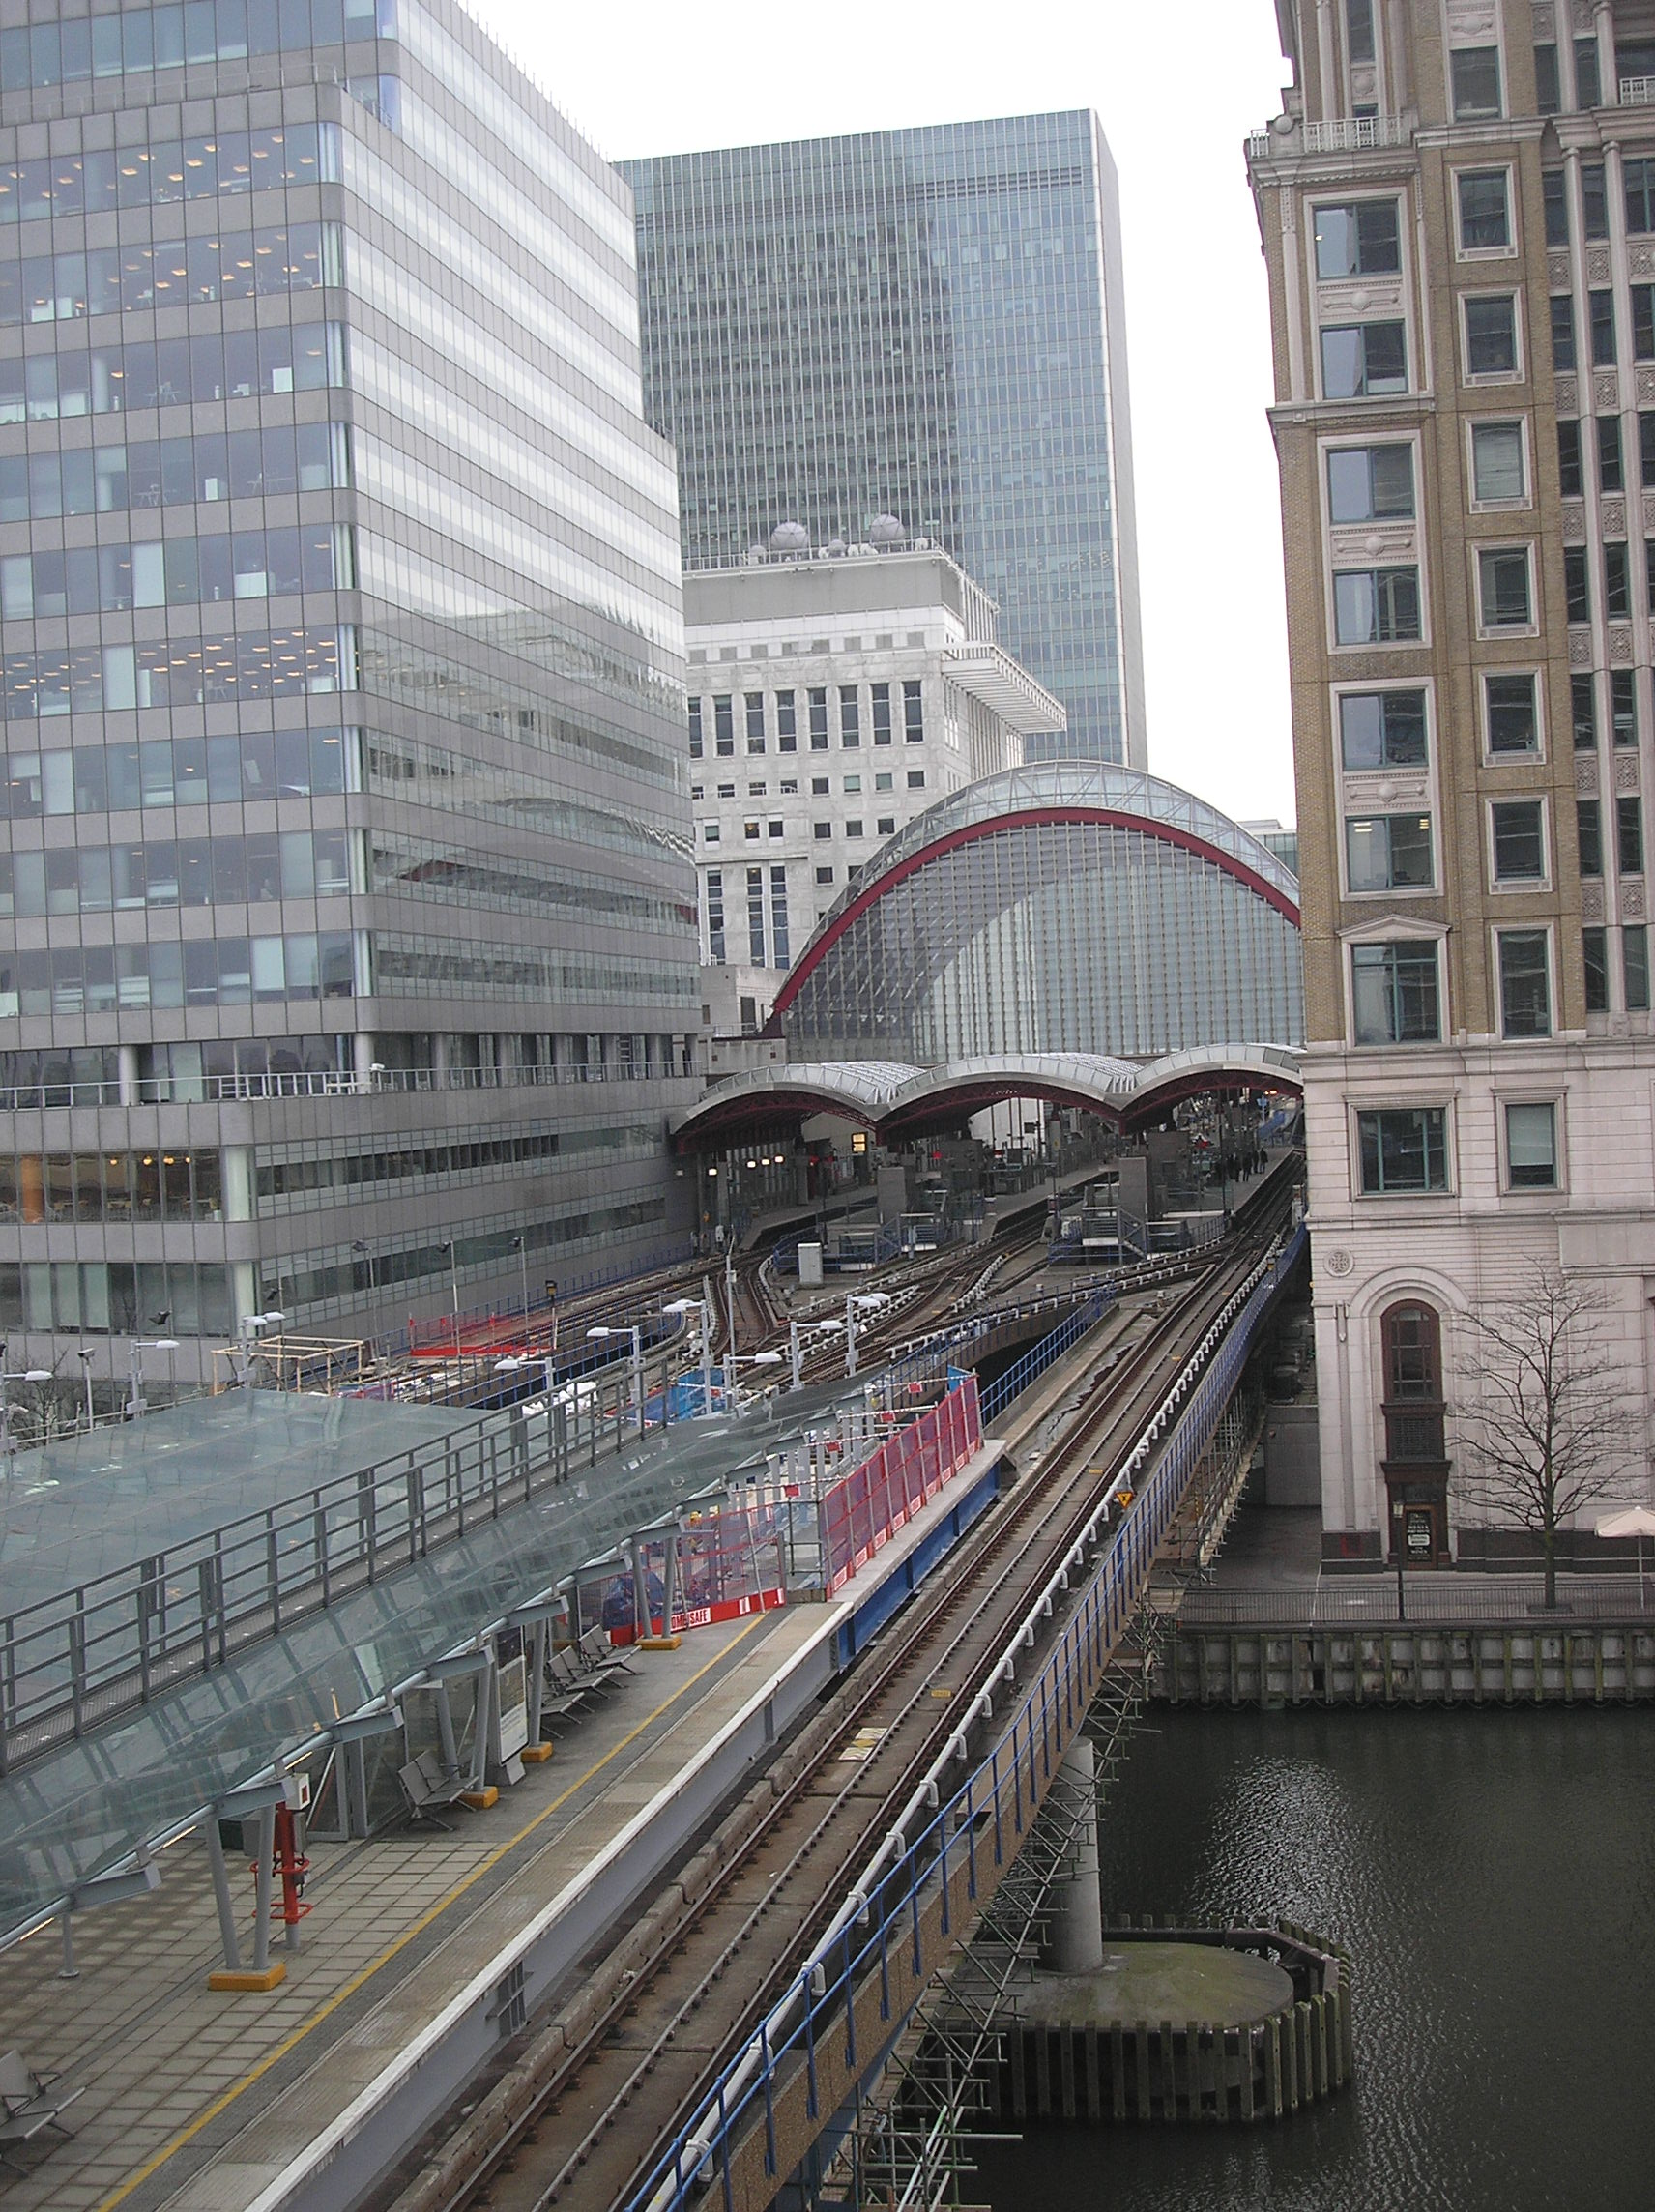 This photo shows Canary Wharf DLR (Docklands Light Railway) station. The station is situate at the foot of the Canary Wharf Tower. The line continues north towards West India Quay and south towards Heron Quays.